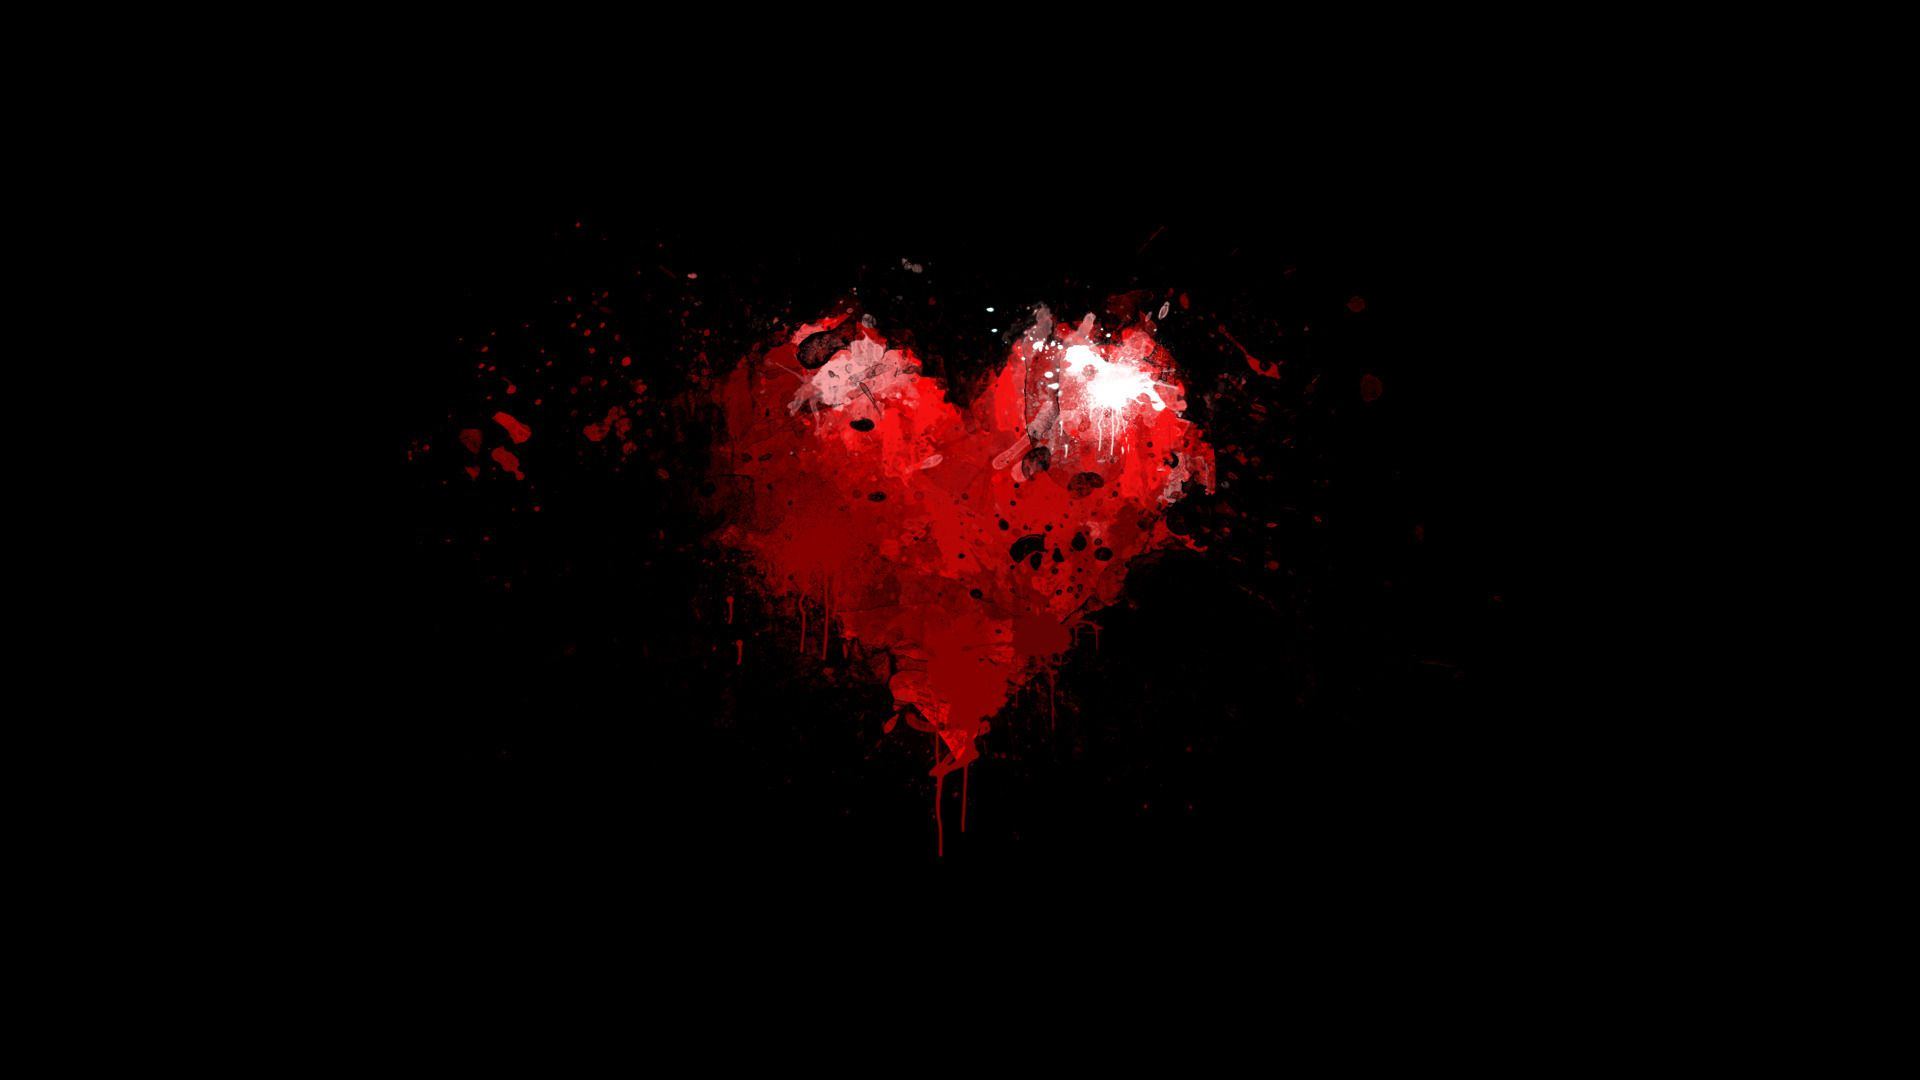 Painted Red Heart On Black Background Widescreen Wallpaper